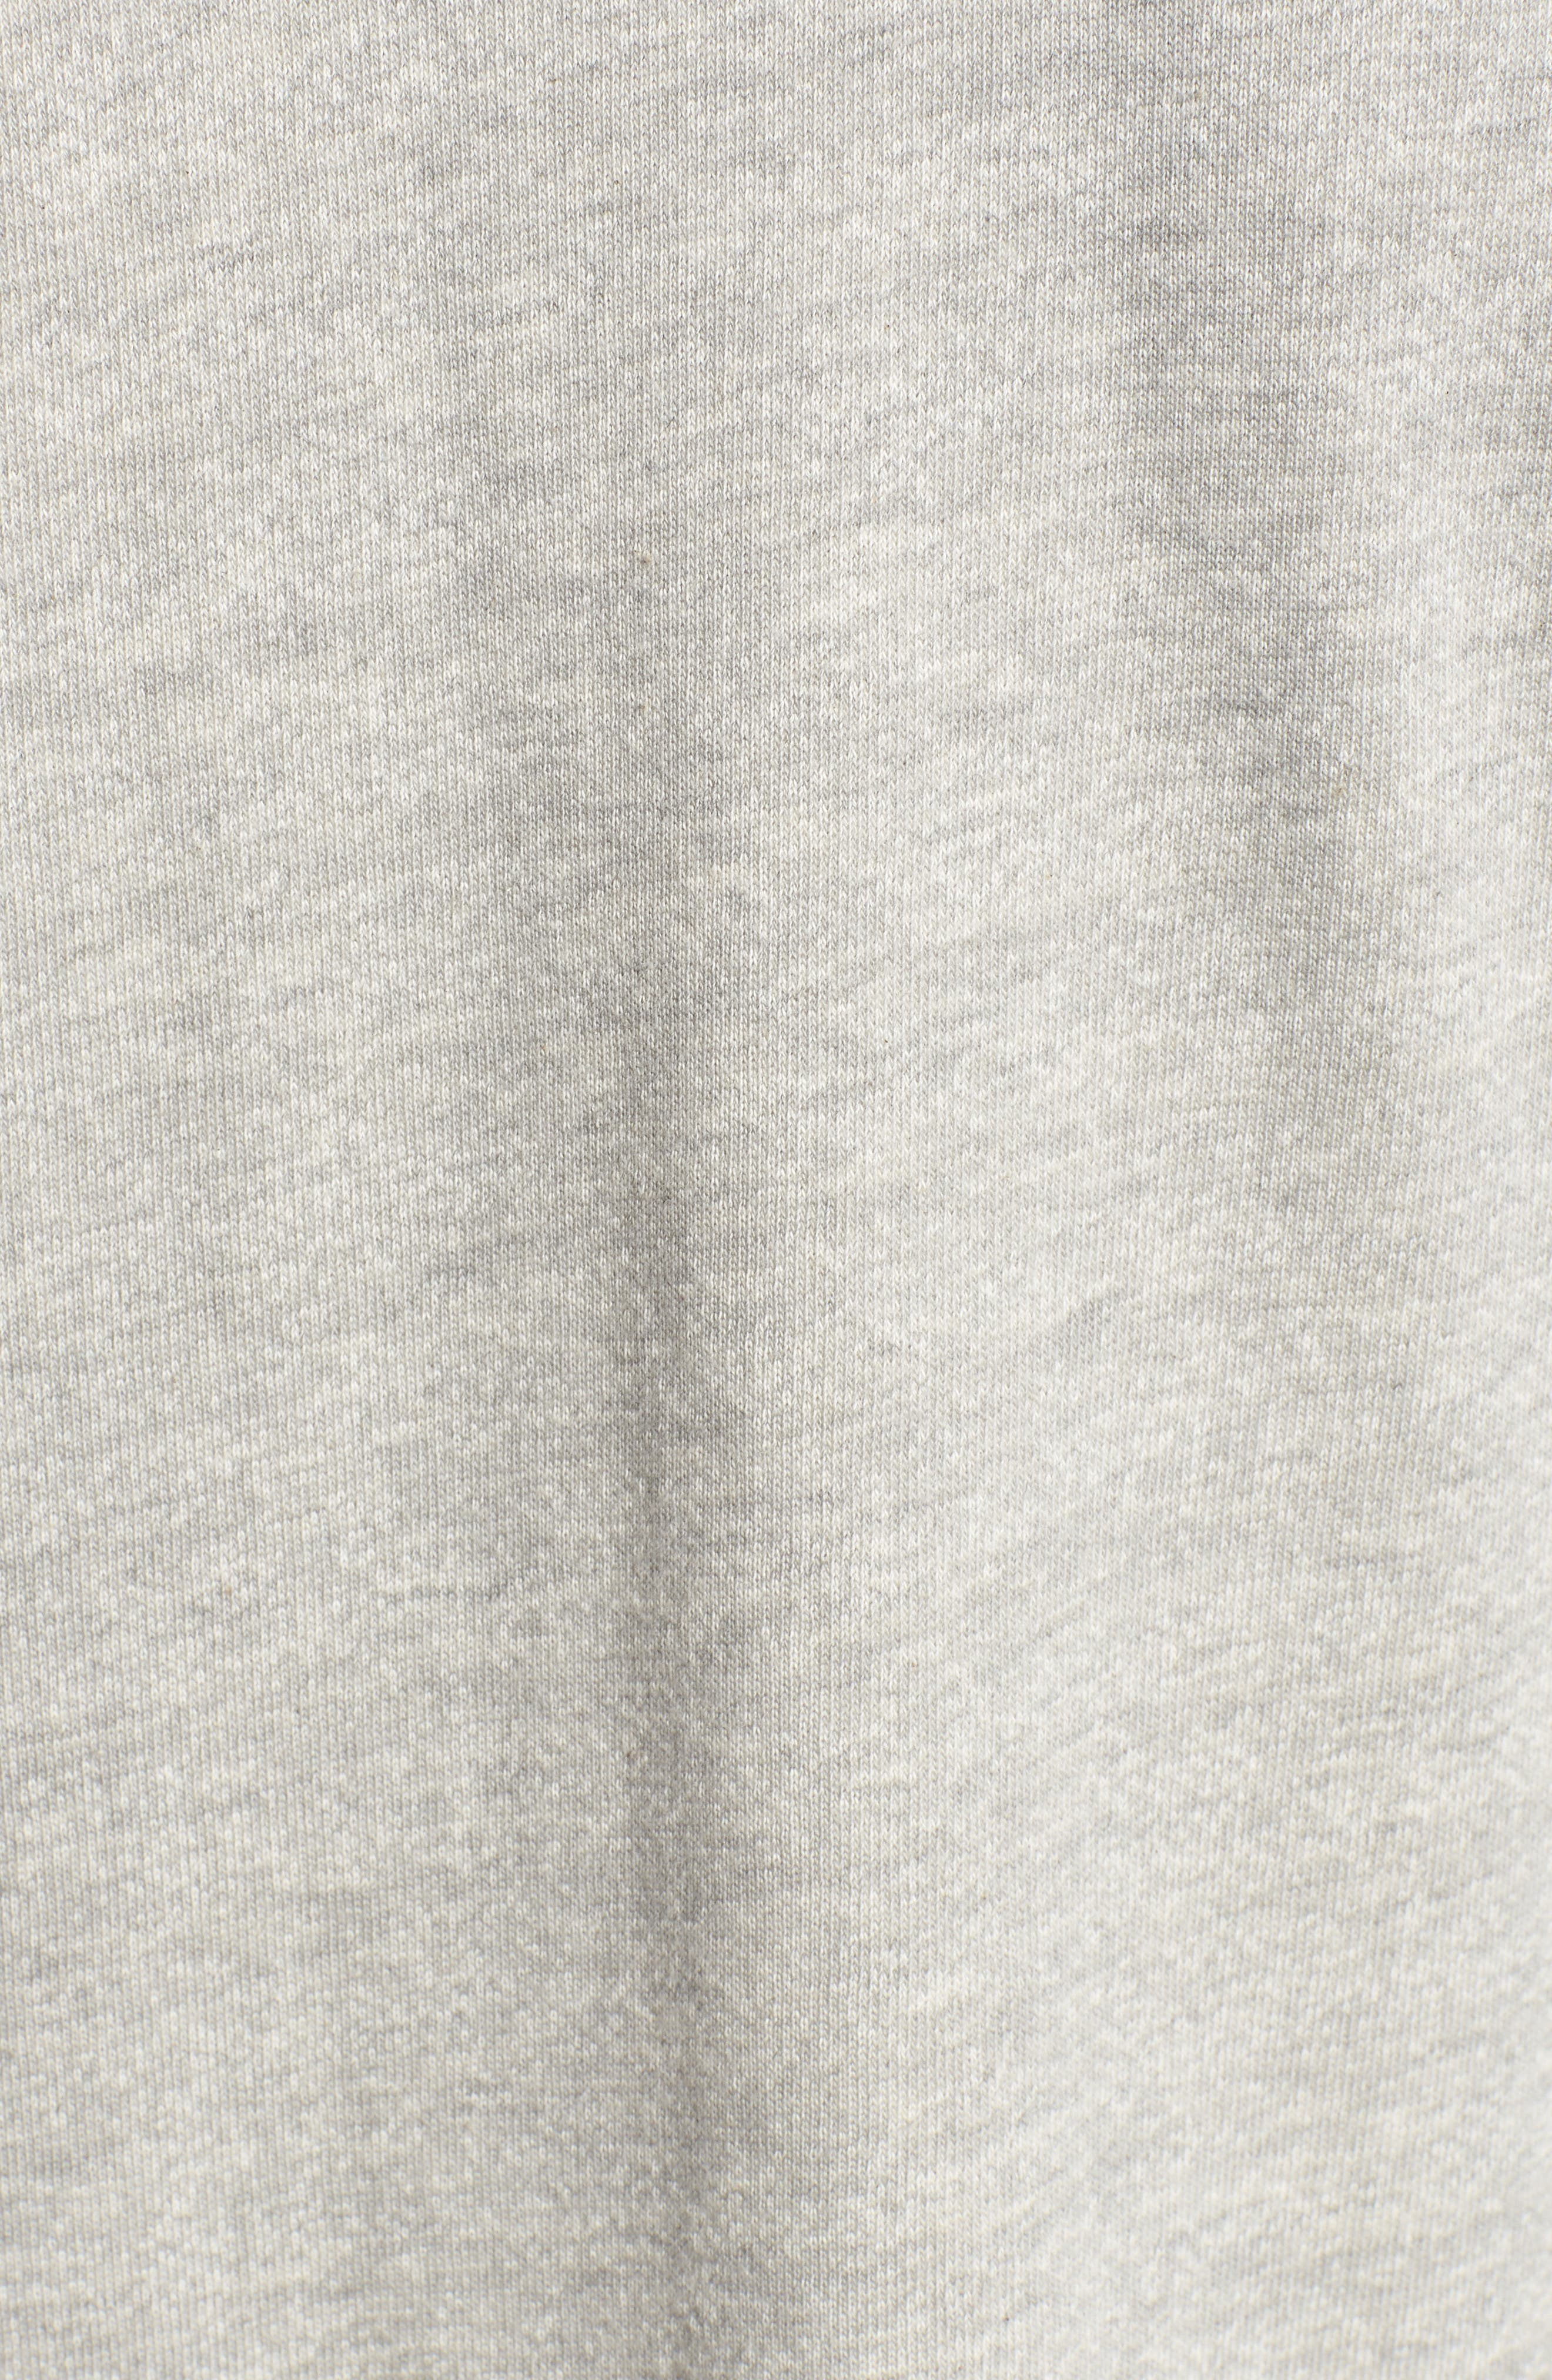 Off-Duty Roll Sleeve Cotton Blend Jacket,                             Alternate thumbnail 18, color,